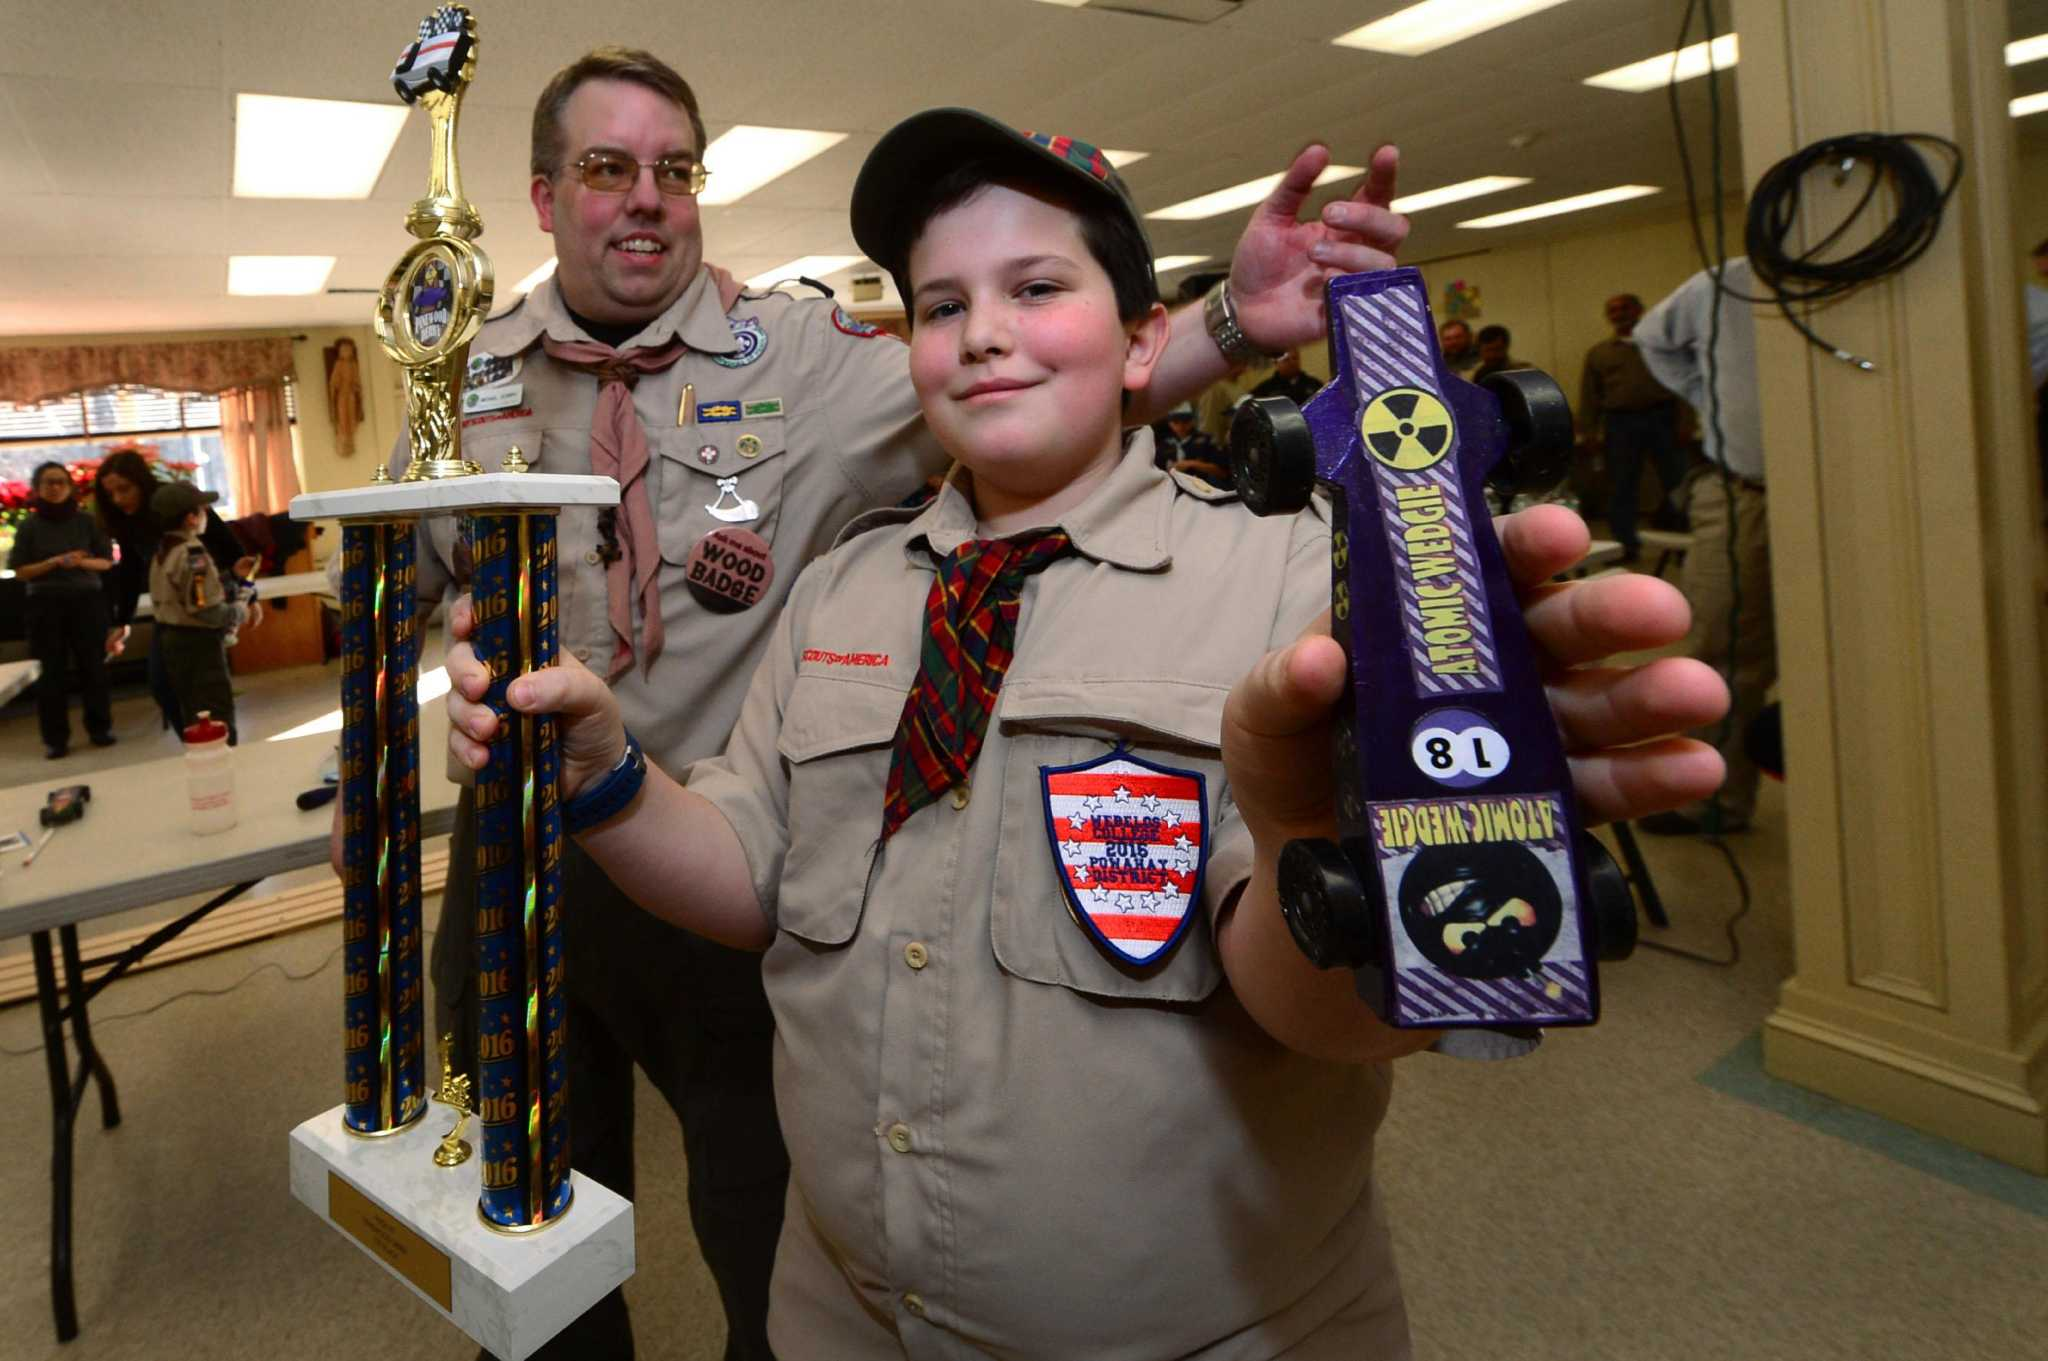 Norwalk Cub Scouts Participate In Annual Pinewood Derby The Hour Finish Line Lamps